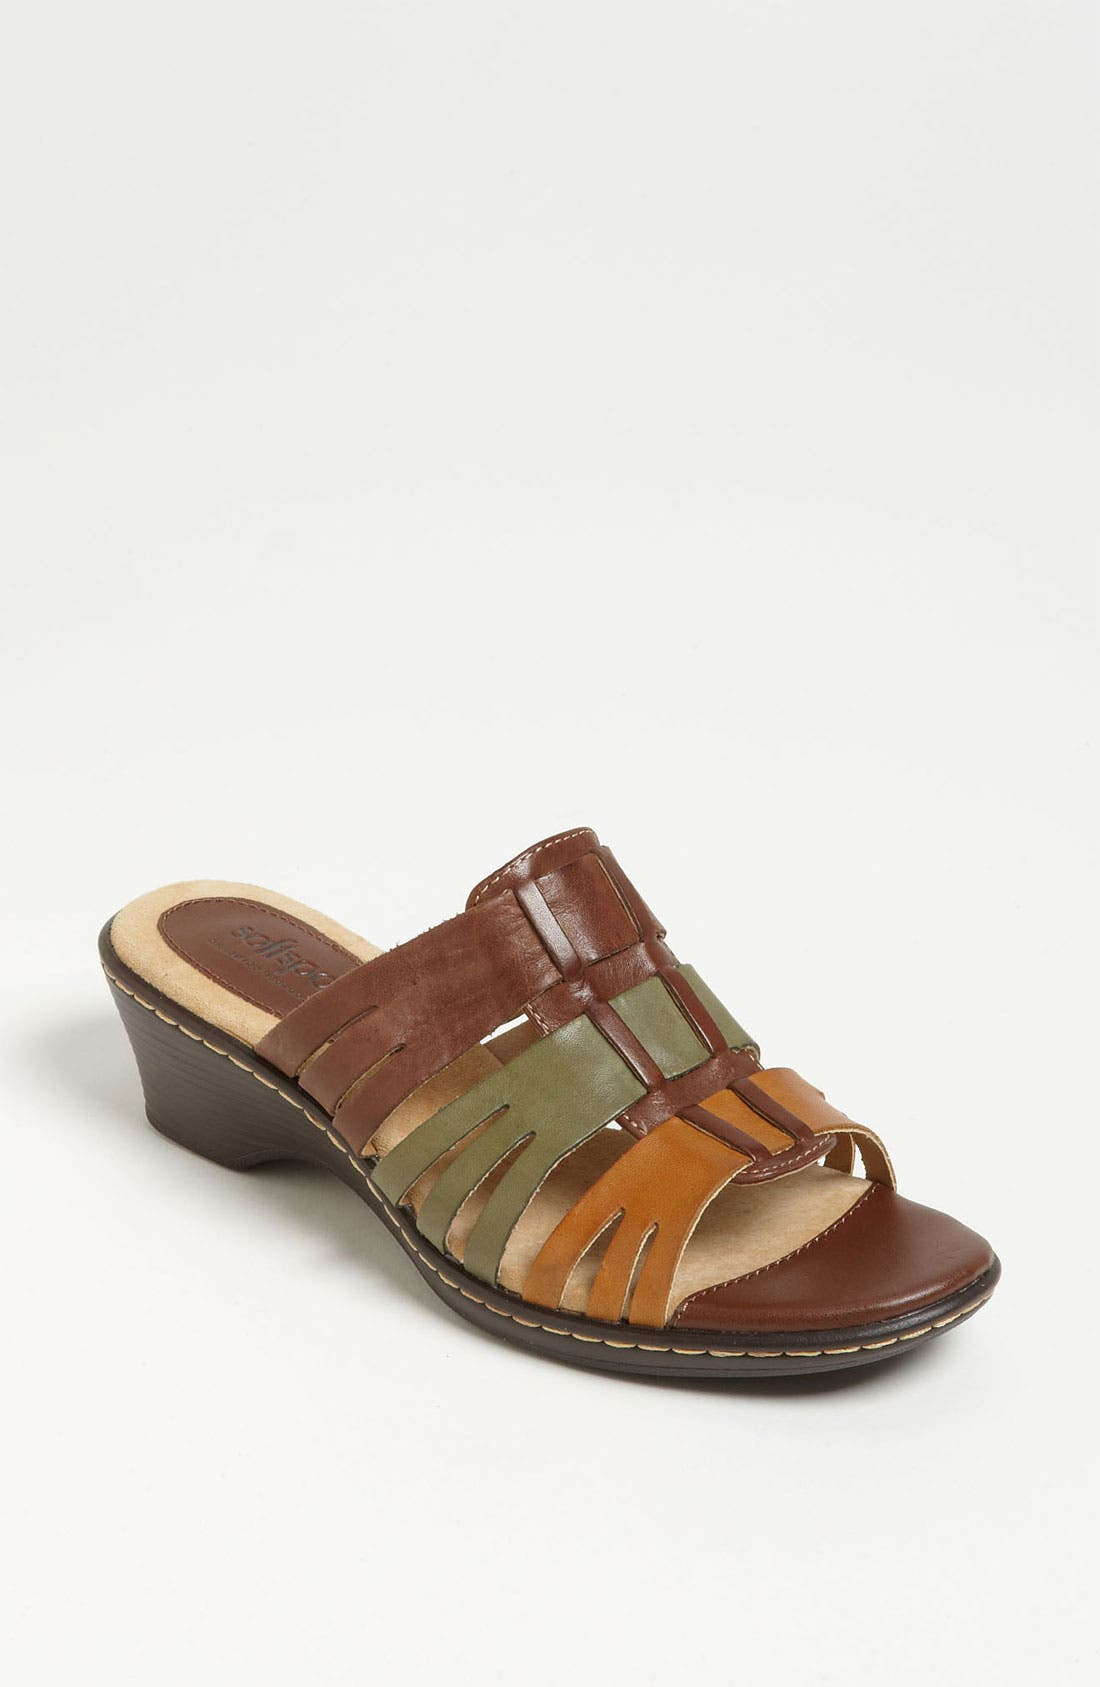 Alternate Image 1 Selected - Softspots 'Hilary' Sandal